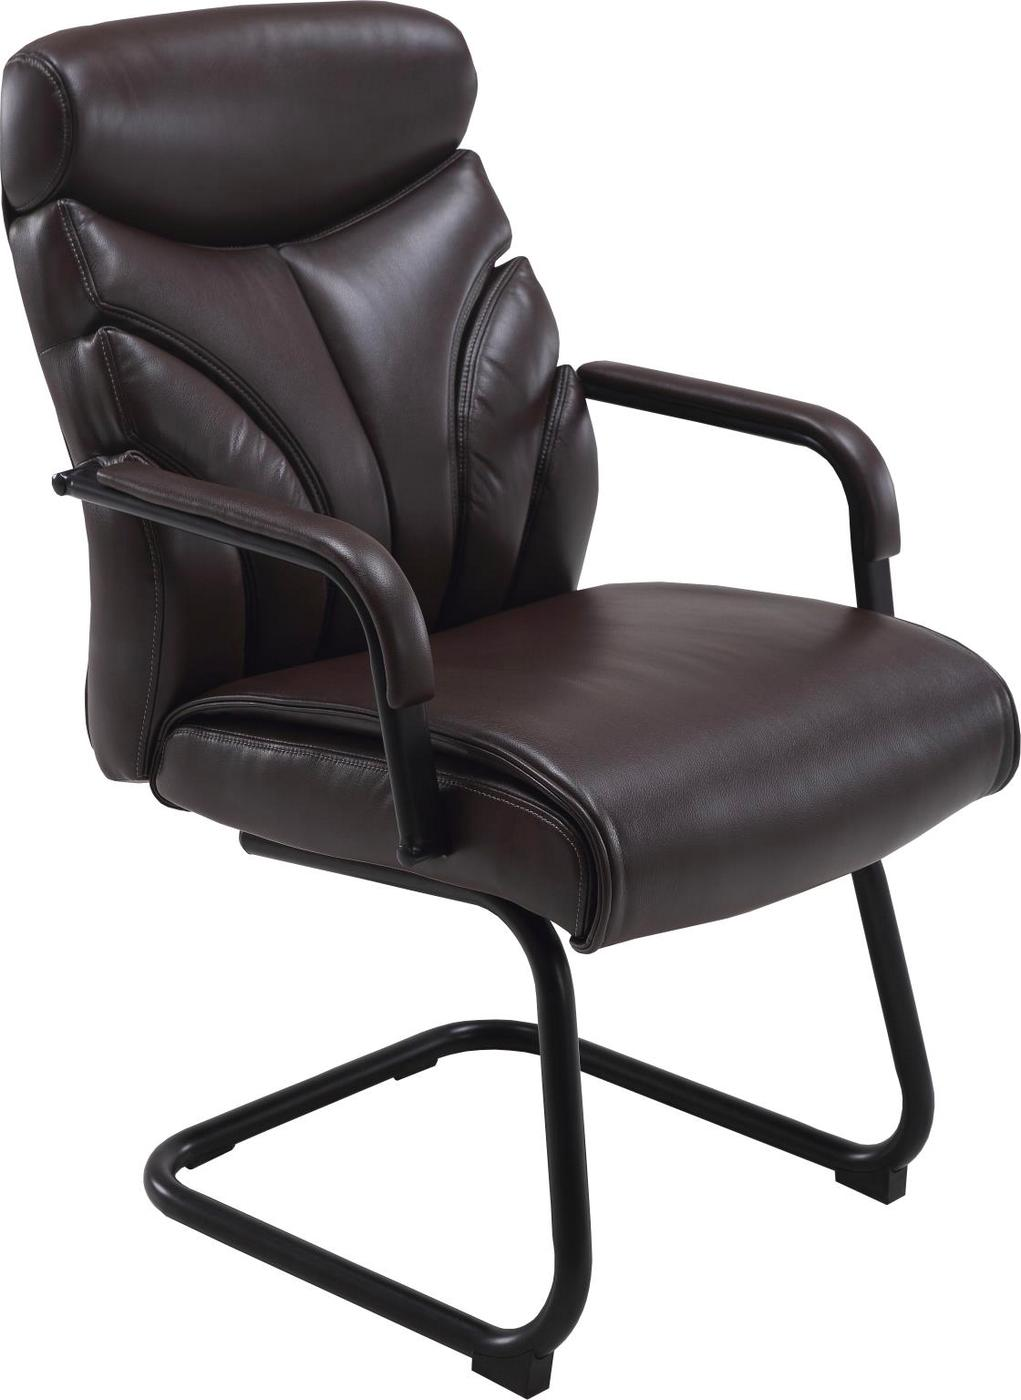 brown office guest chairs chair design sketch signature contemporary with modern back in mahogany